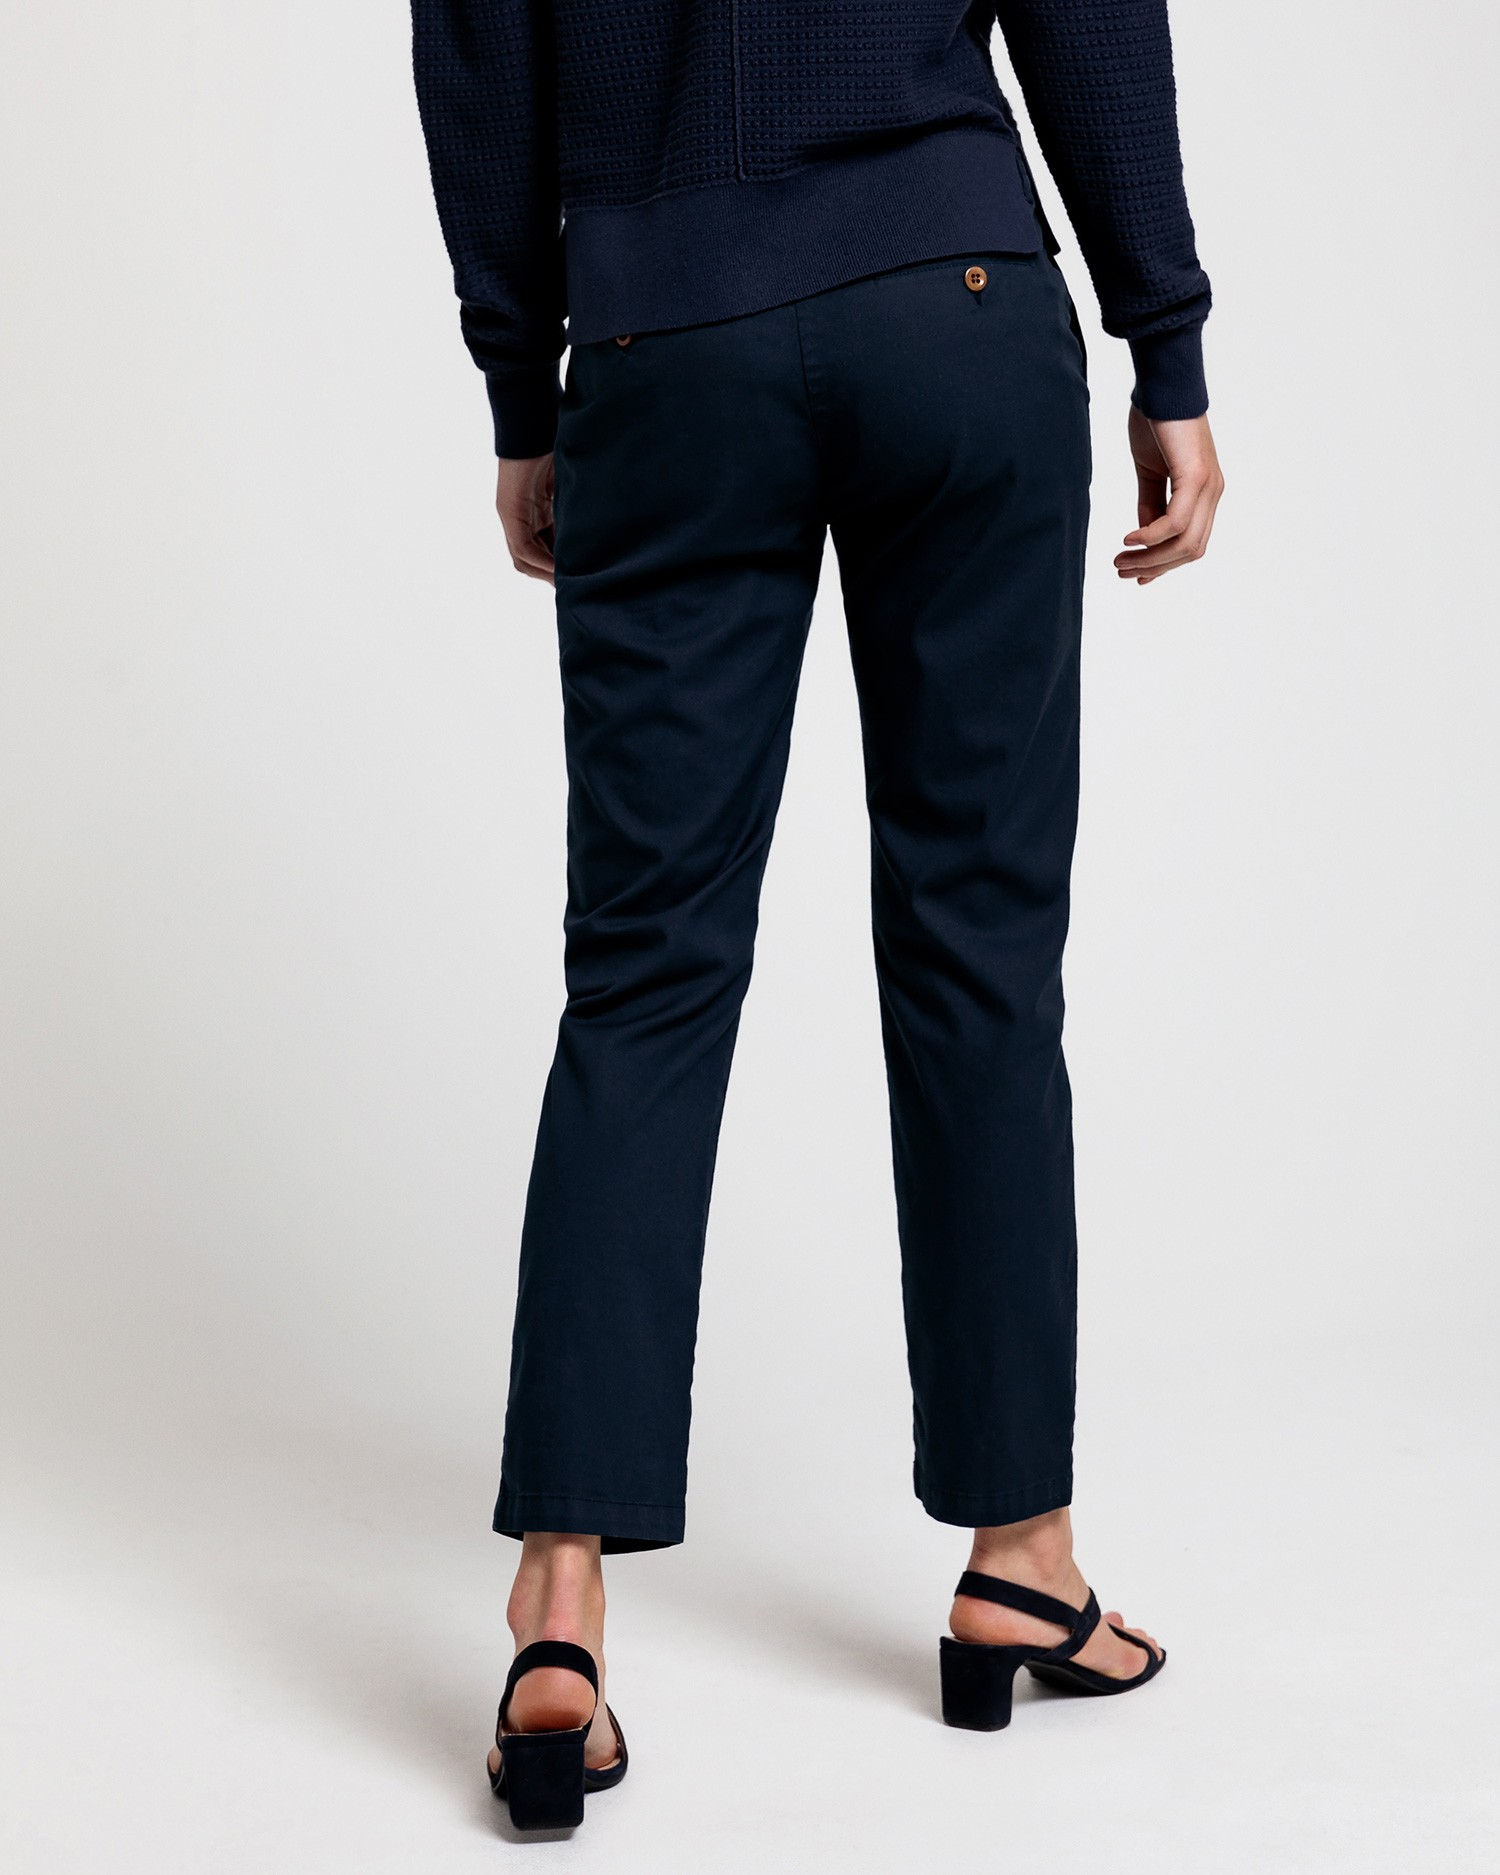 GANT Women Navy Blue Trousers - 4150132